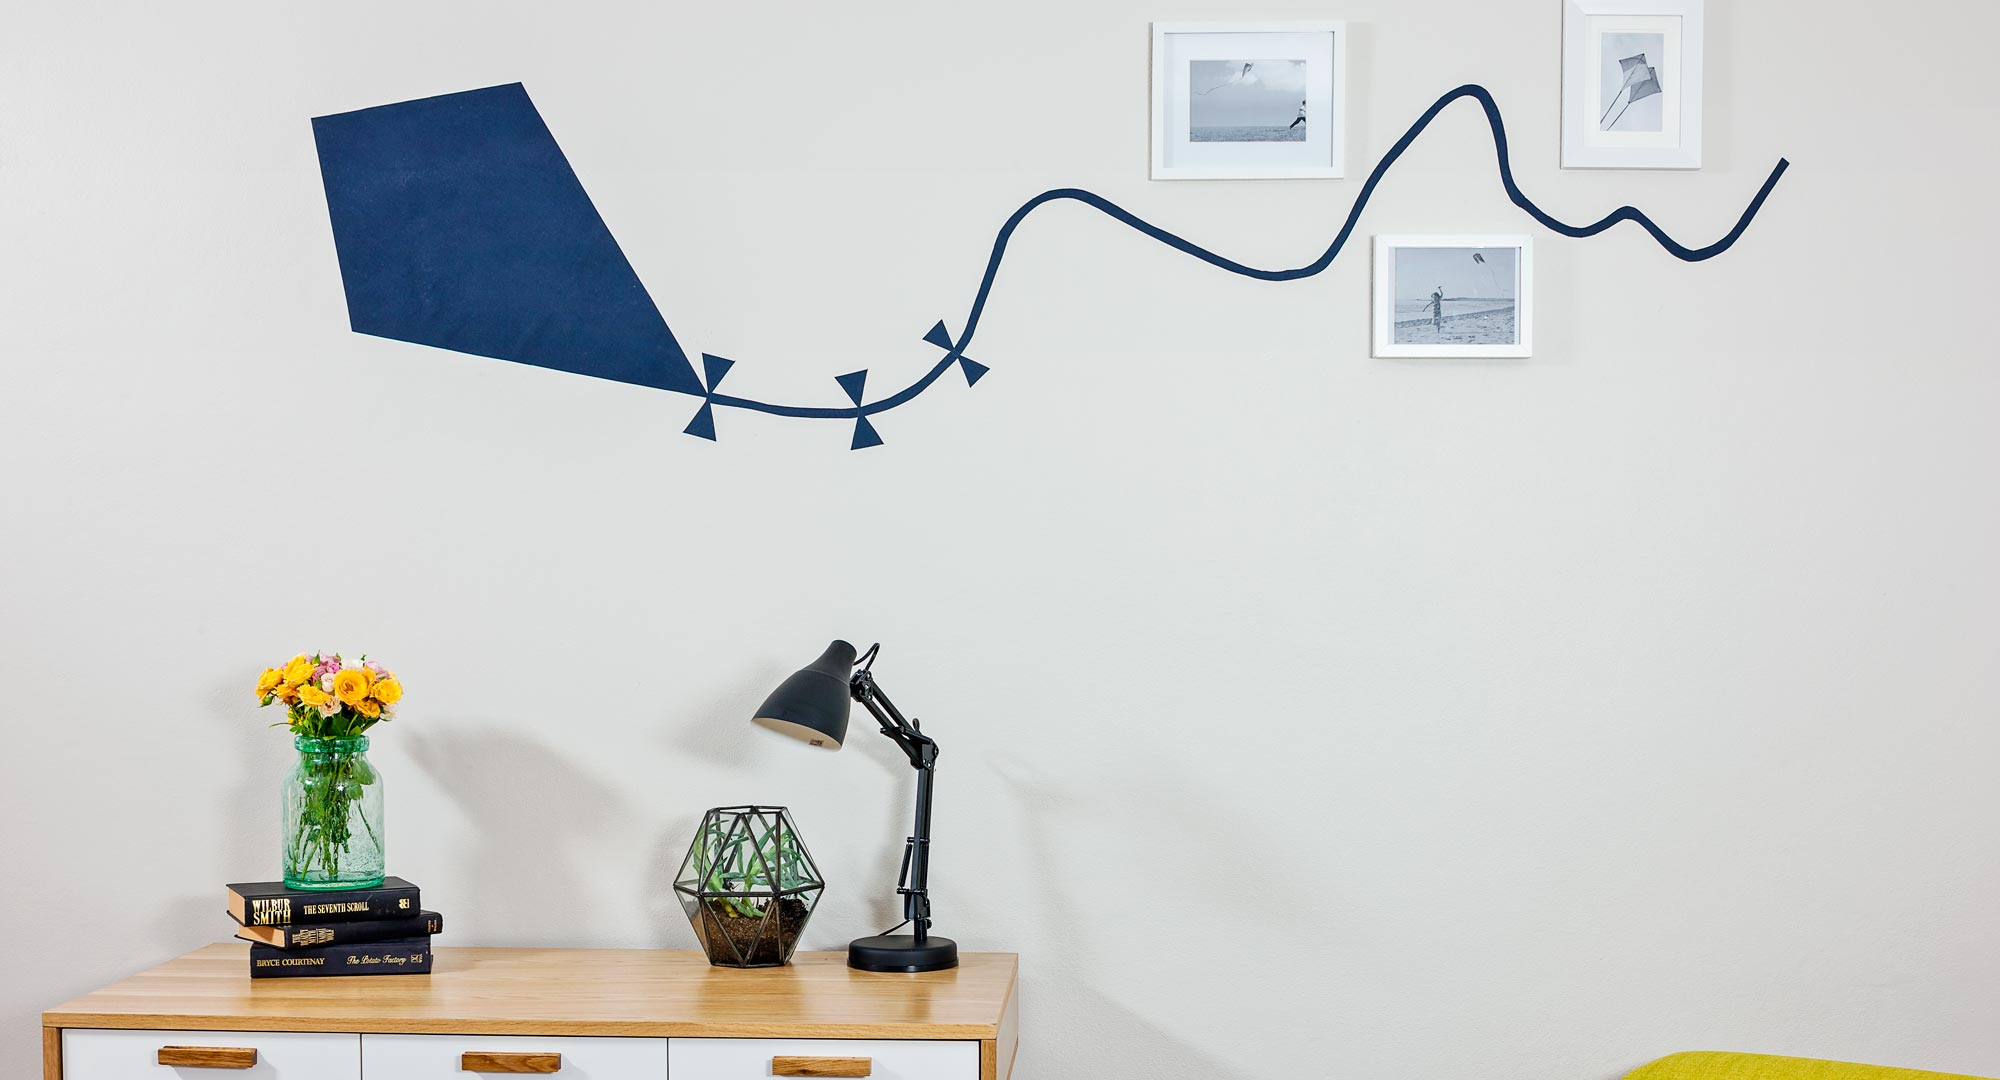 How To Make A Kite Wall Decal Diy Gardening Craft